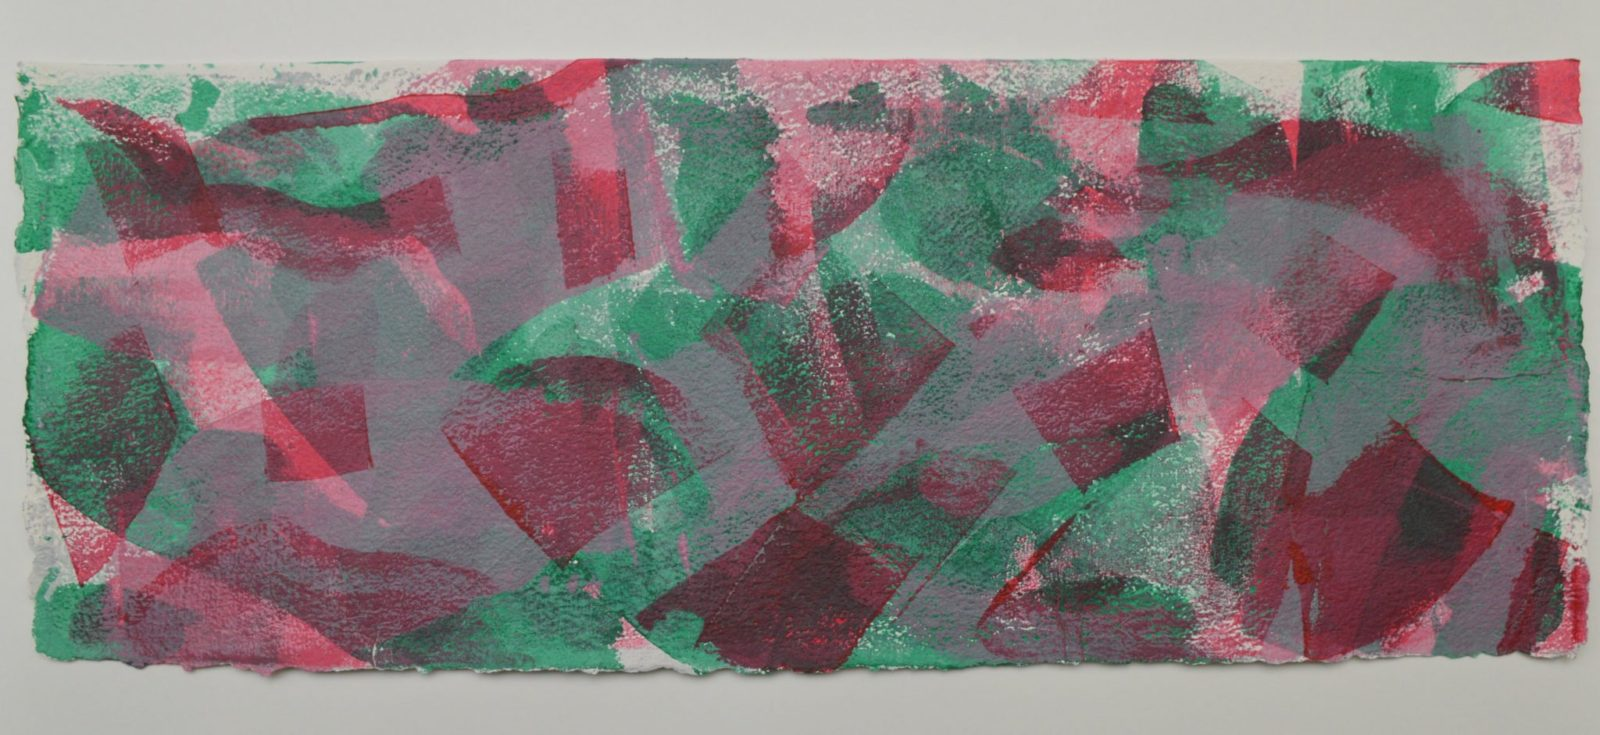 Shifting Sand 2 in bright green, red and pale pink, on Moulin de Larroque Lys paper. One of a series of 6 mono screen prints inspired by the movement found in opals.